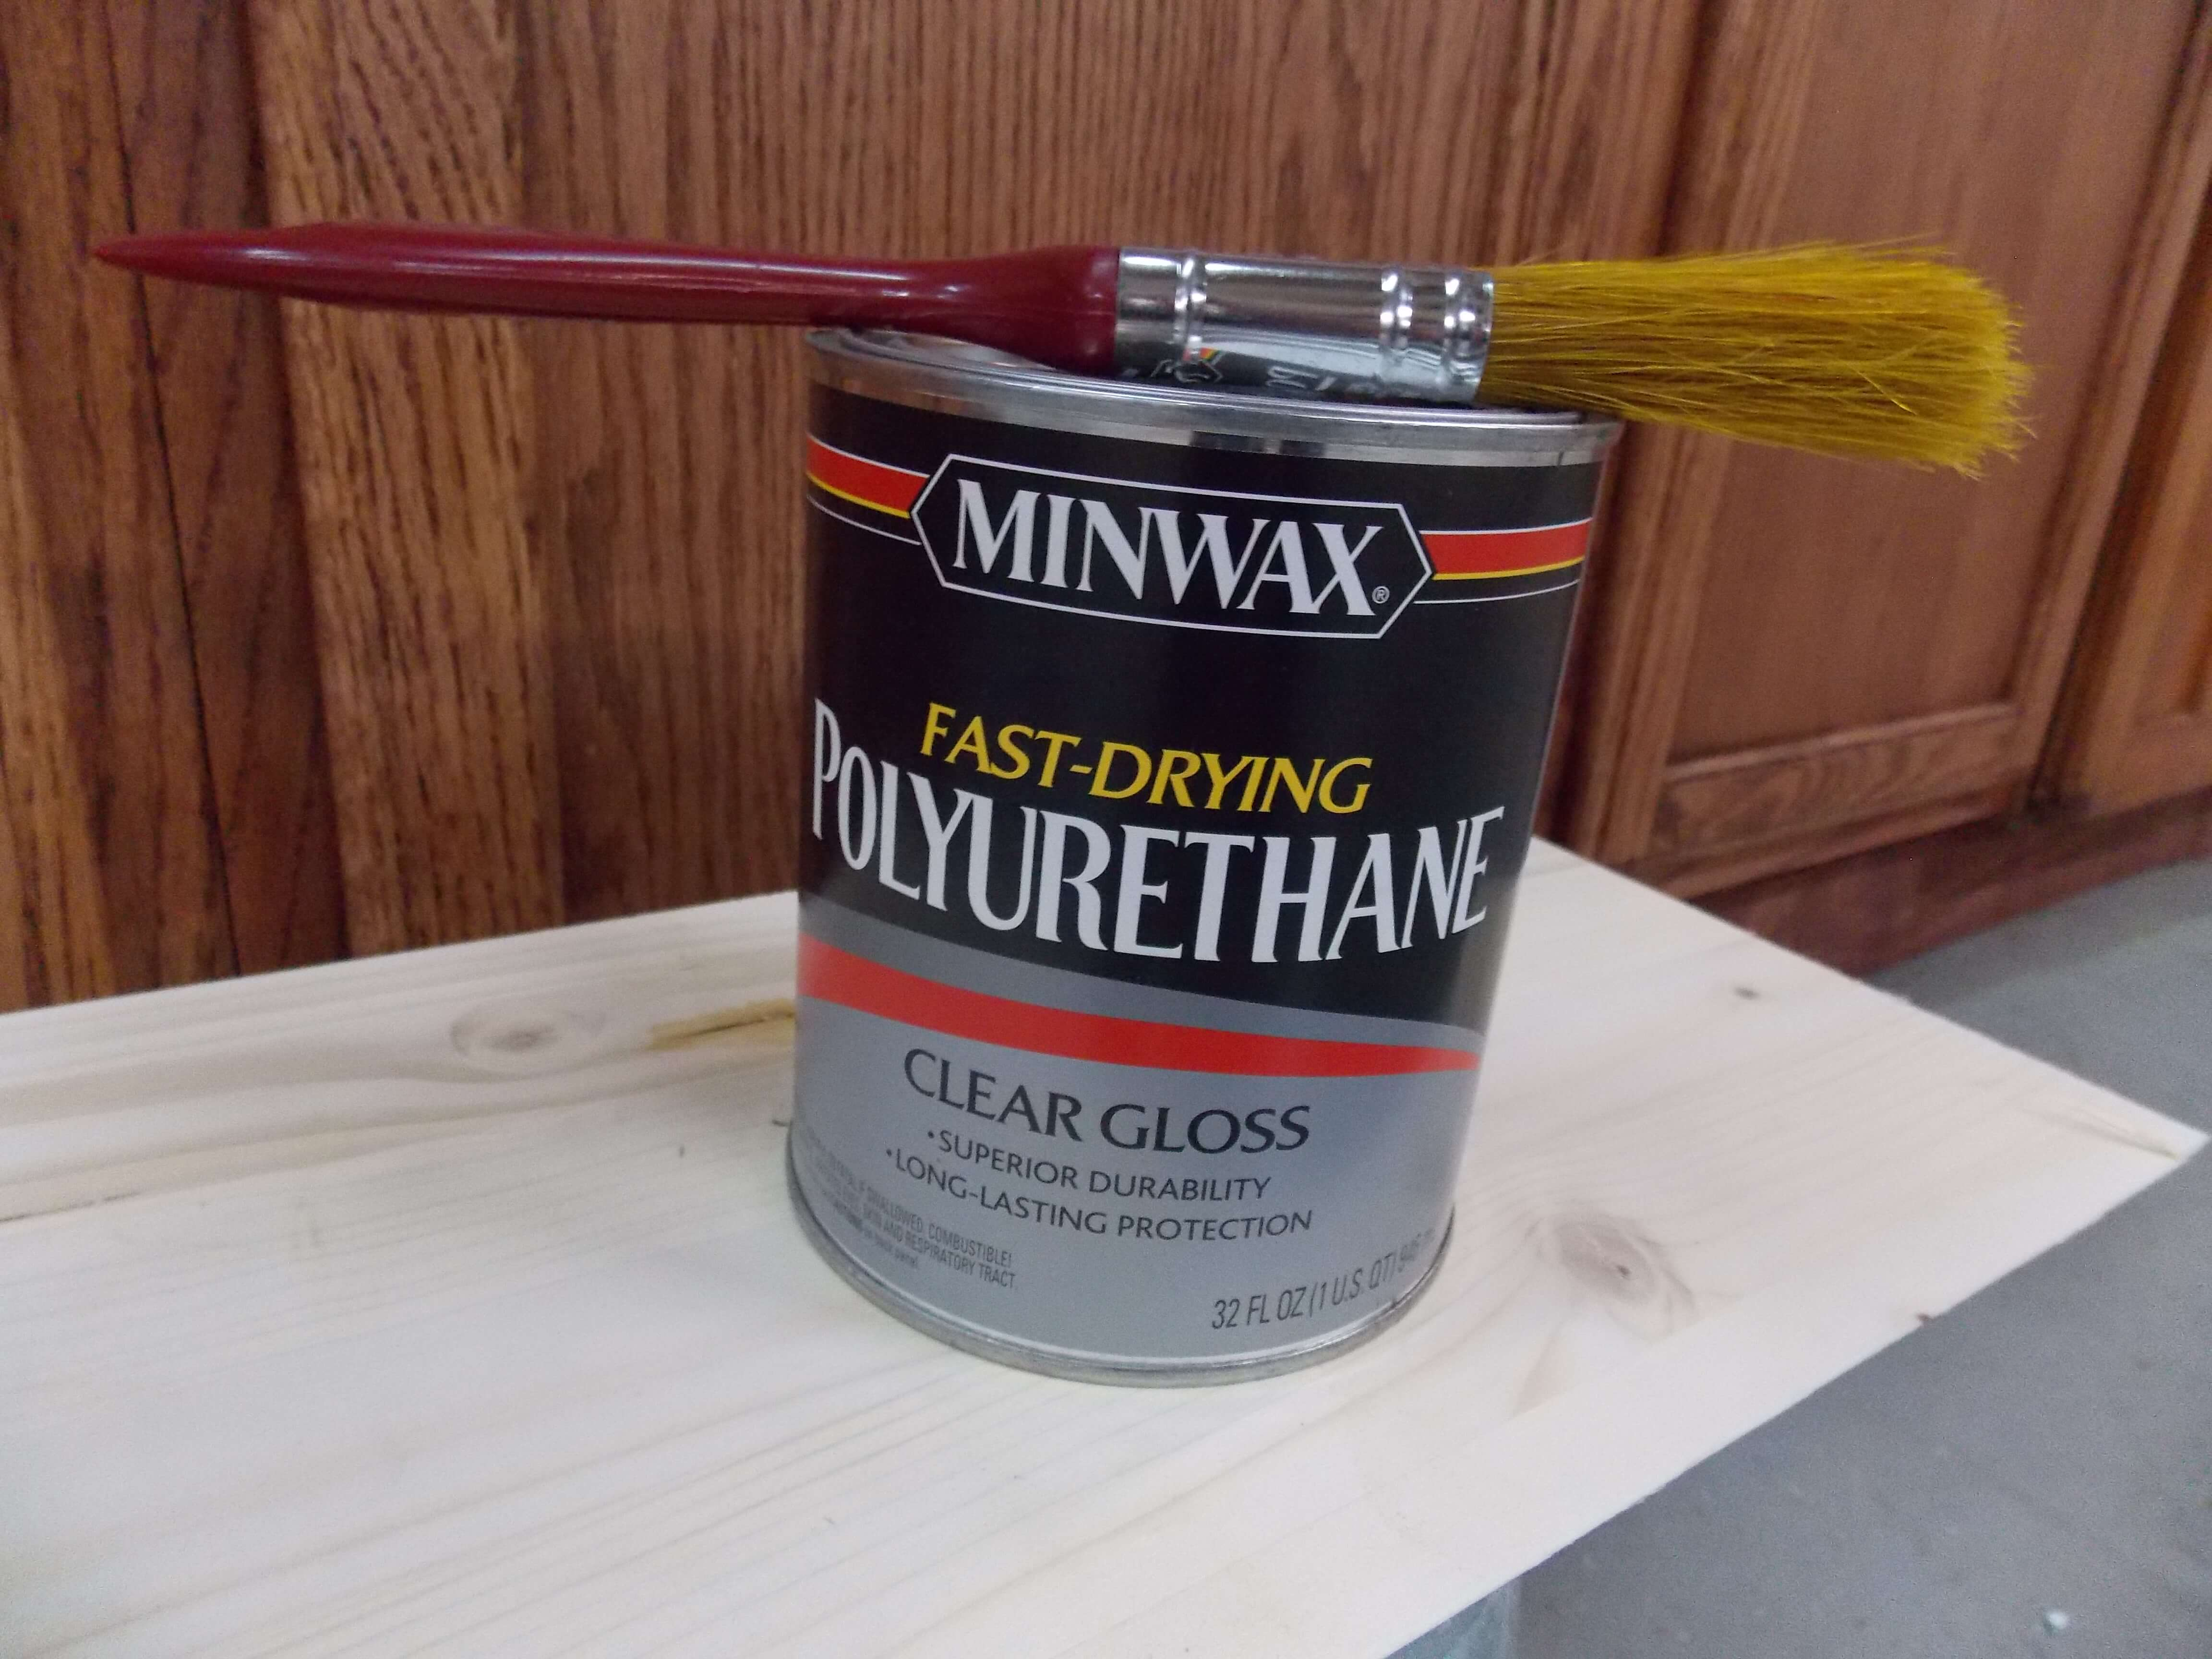 Apply a coat of fast-drying polyurethane to seal in cabinet stain